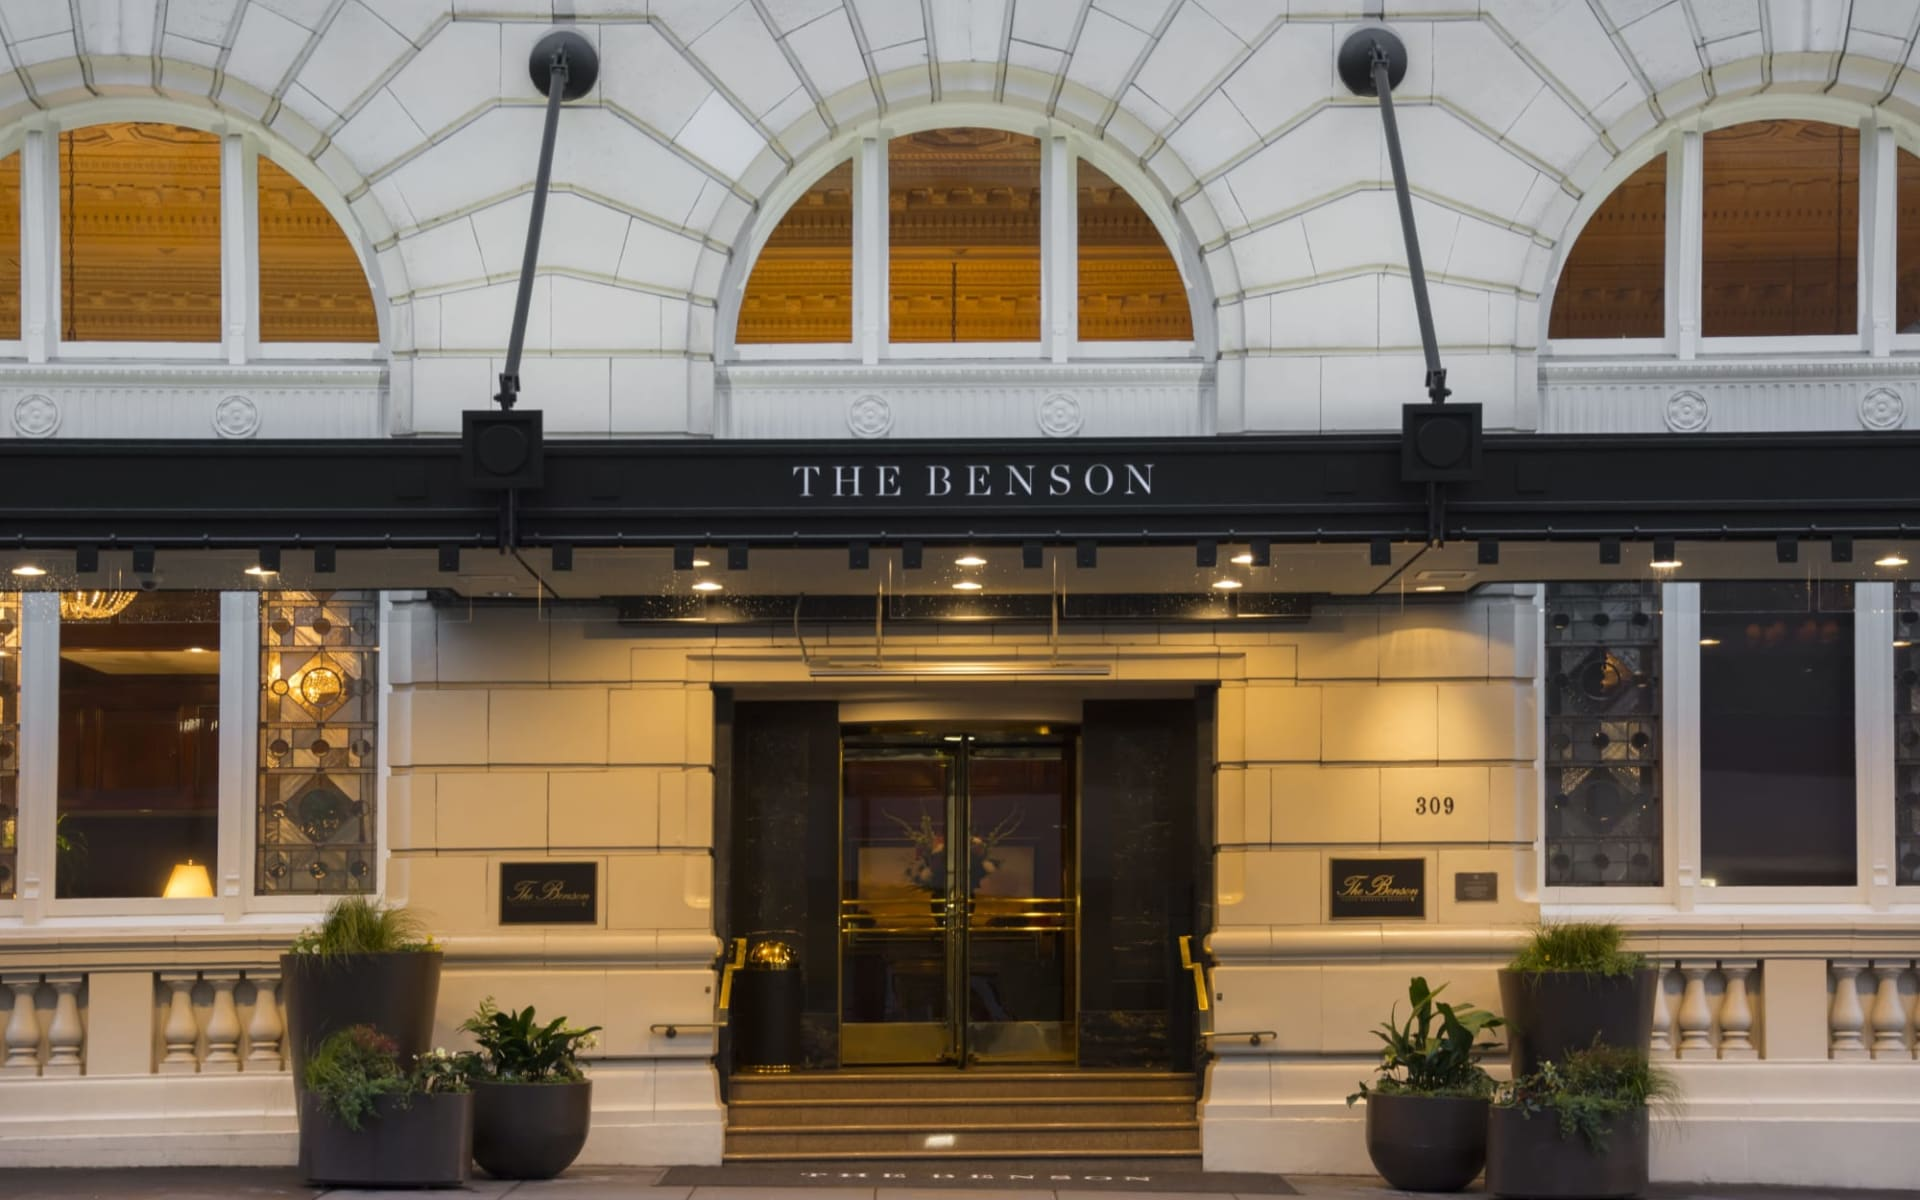 The Benson Hotel in Portland:  Benson 1A